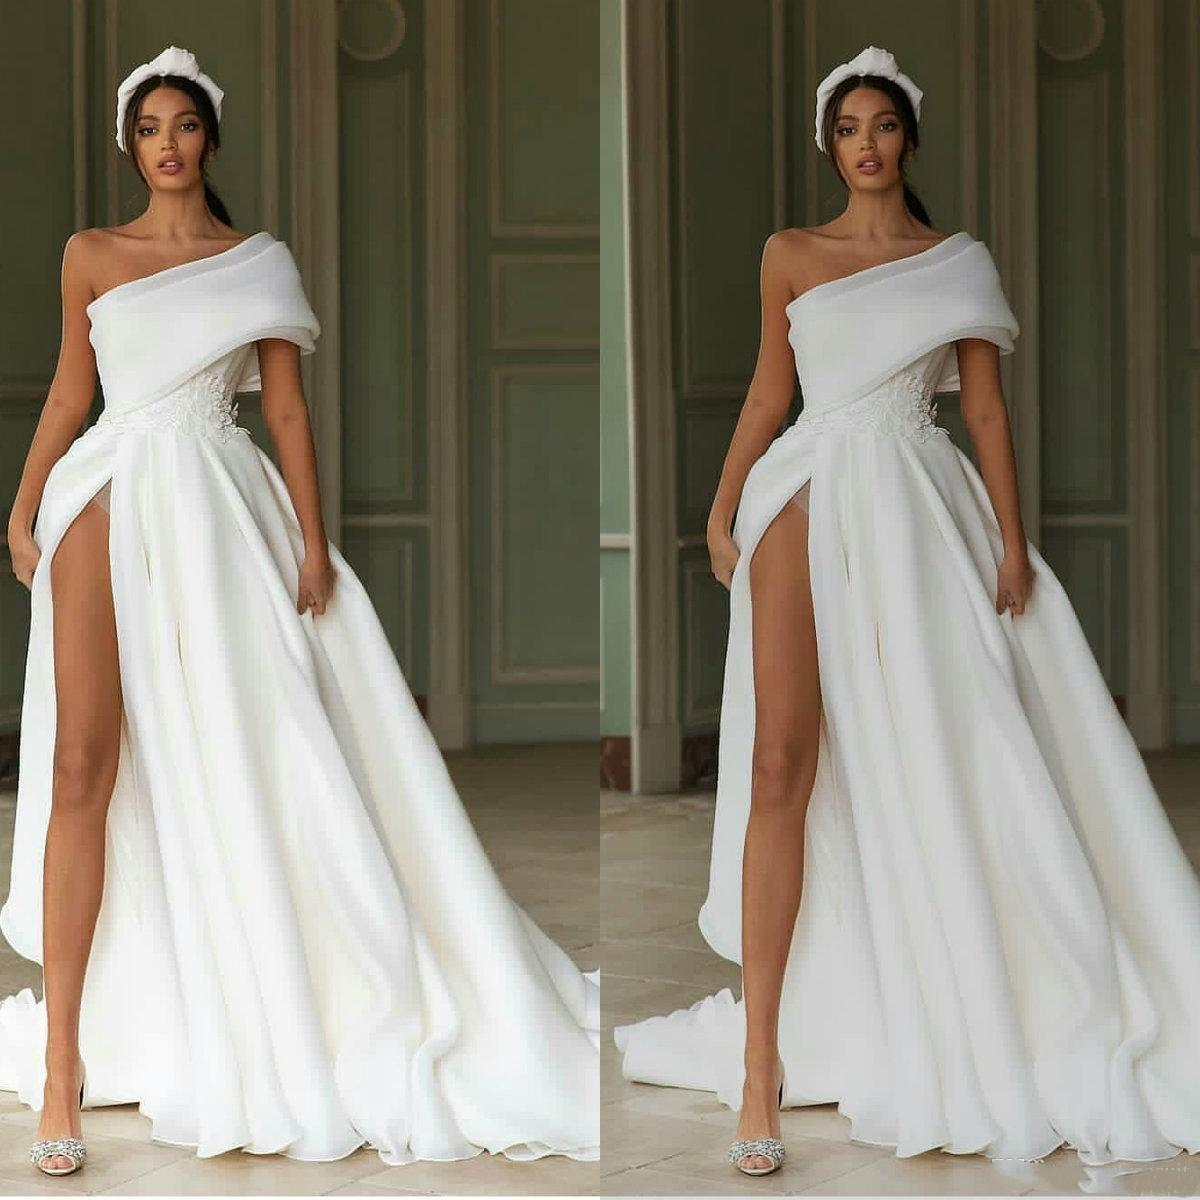 2020 A-line Wedding Dresses Sexy One-shoulder High-split Appliques Sash Bridal Gown Tulle Ruched Sweep Train Custom Made Robes De Mariée